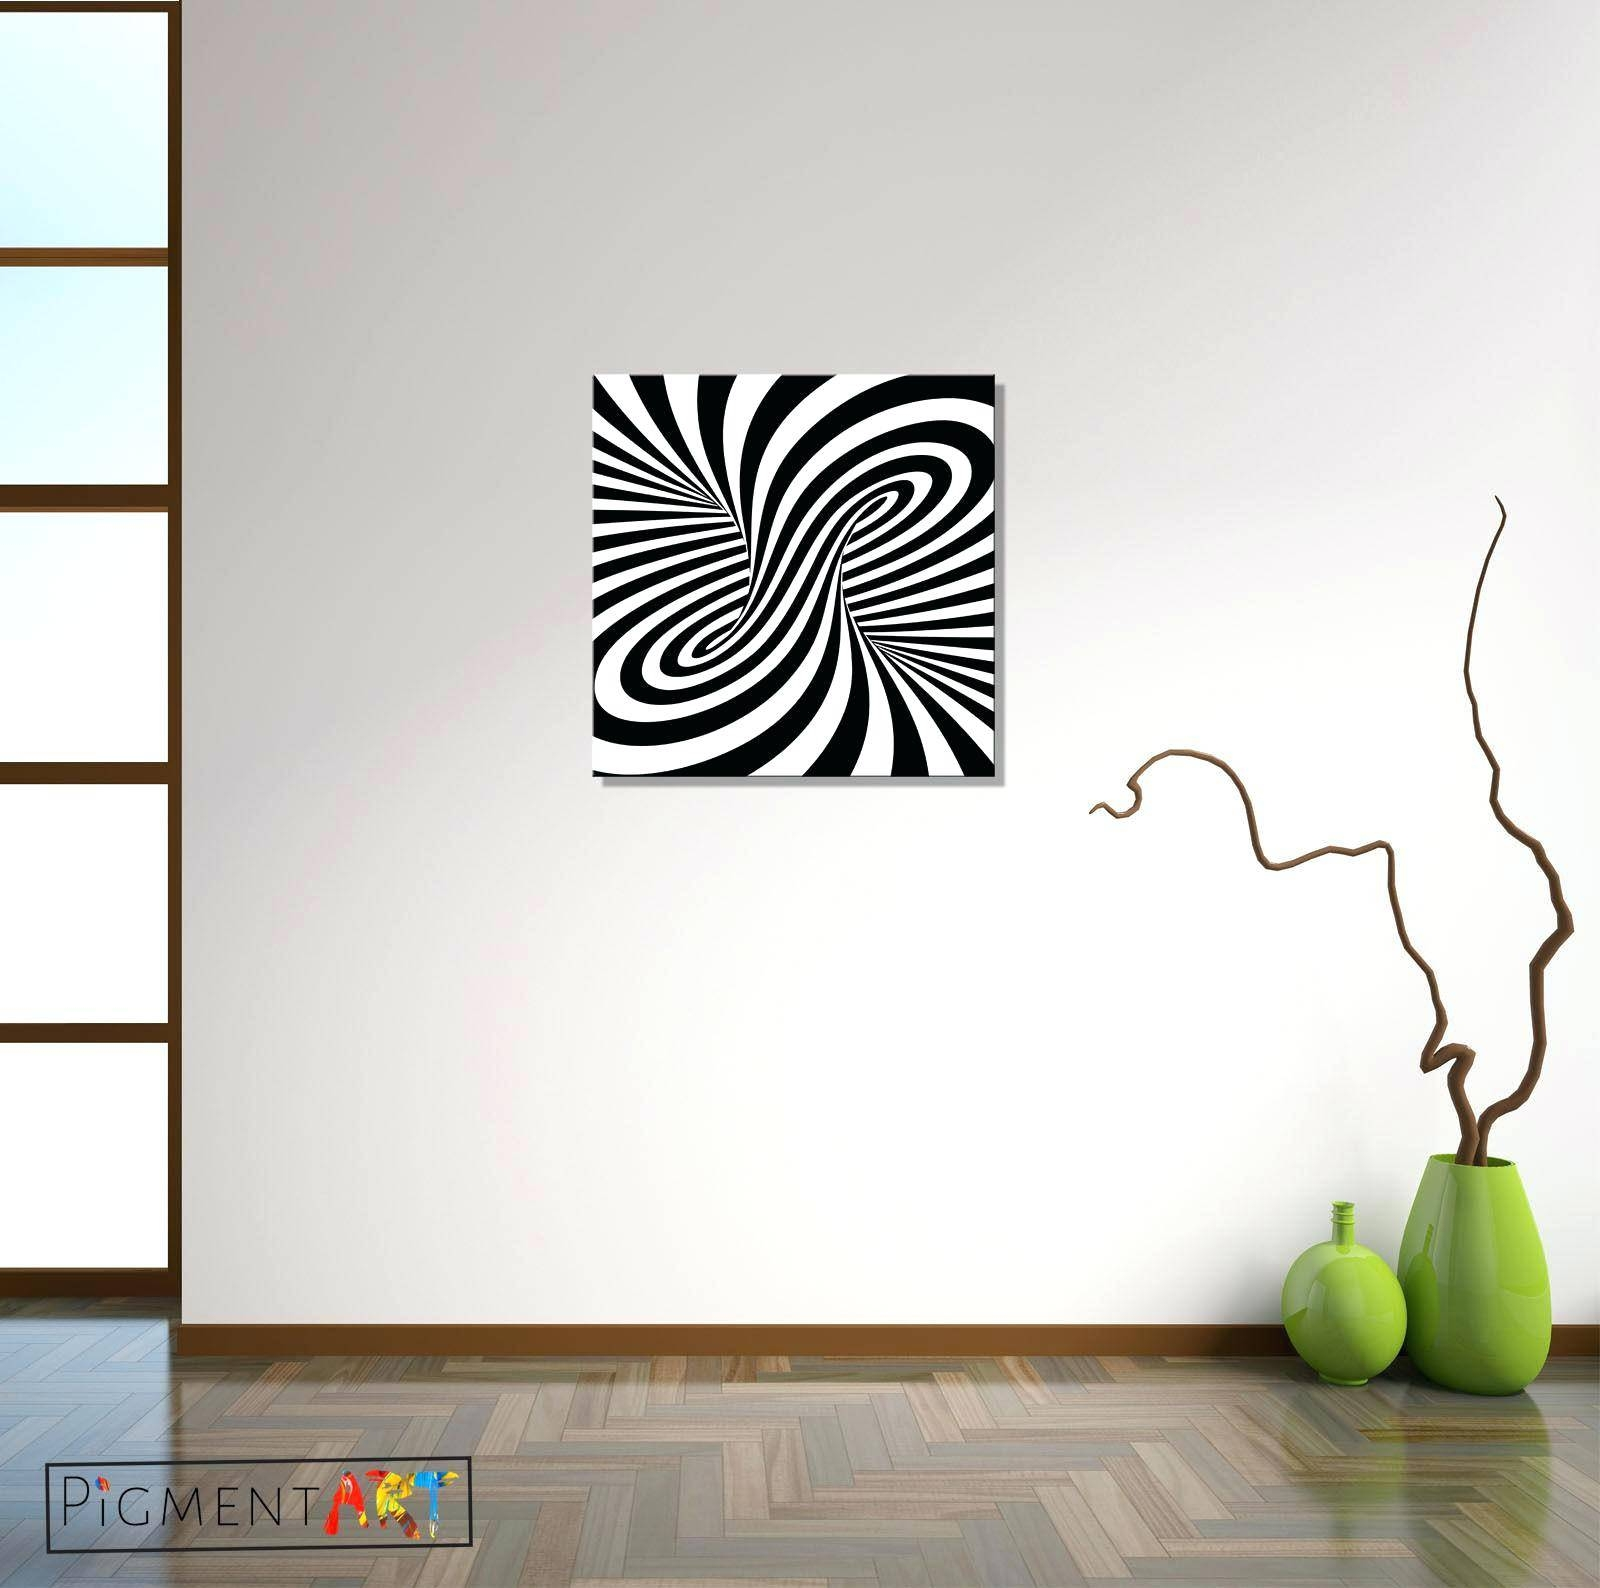 Cafepress Wall Decals Custom Small Wall Art Design Inspiration Of Pertaining To Most Up To Date Illusion Wall Art (View 10 of 20)